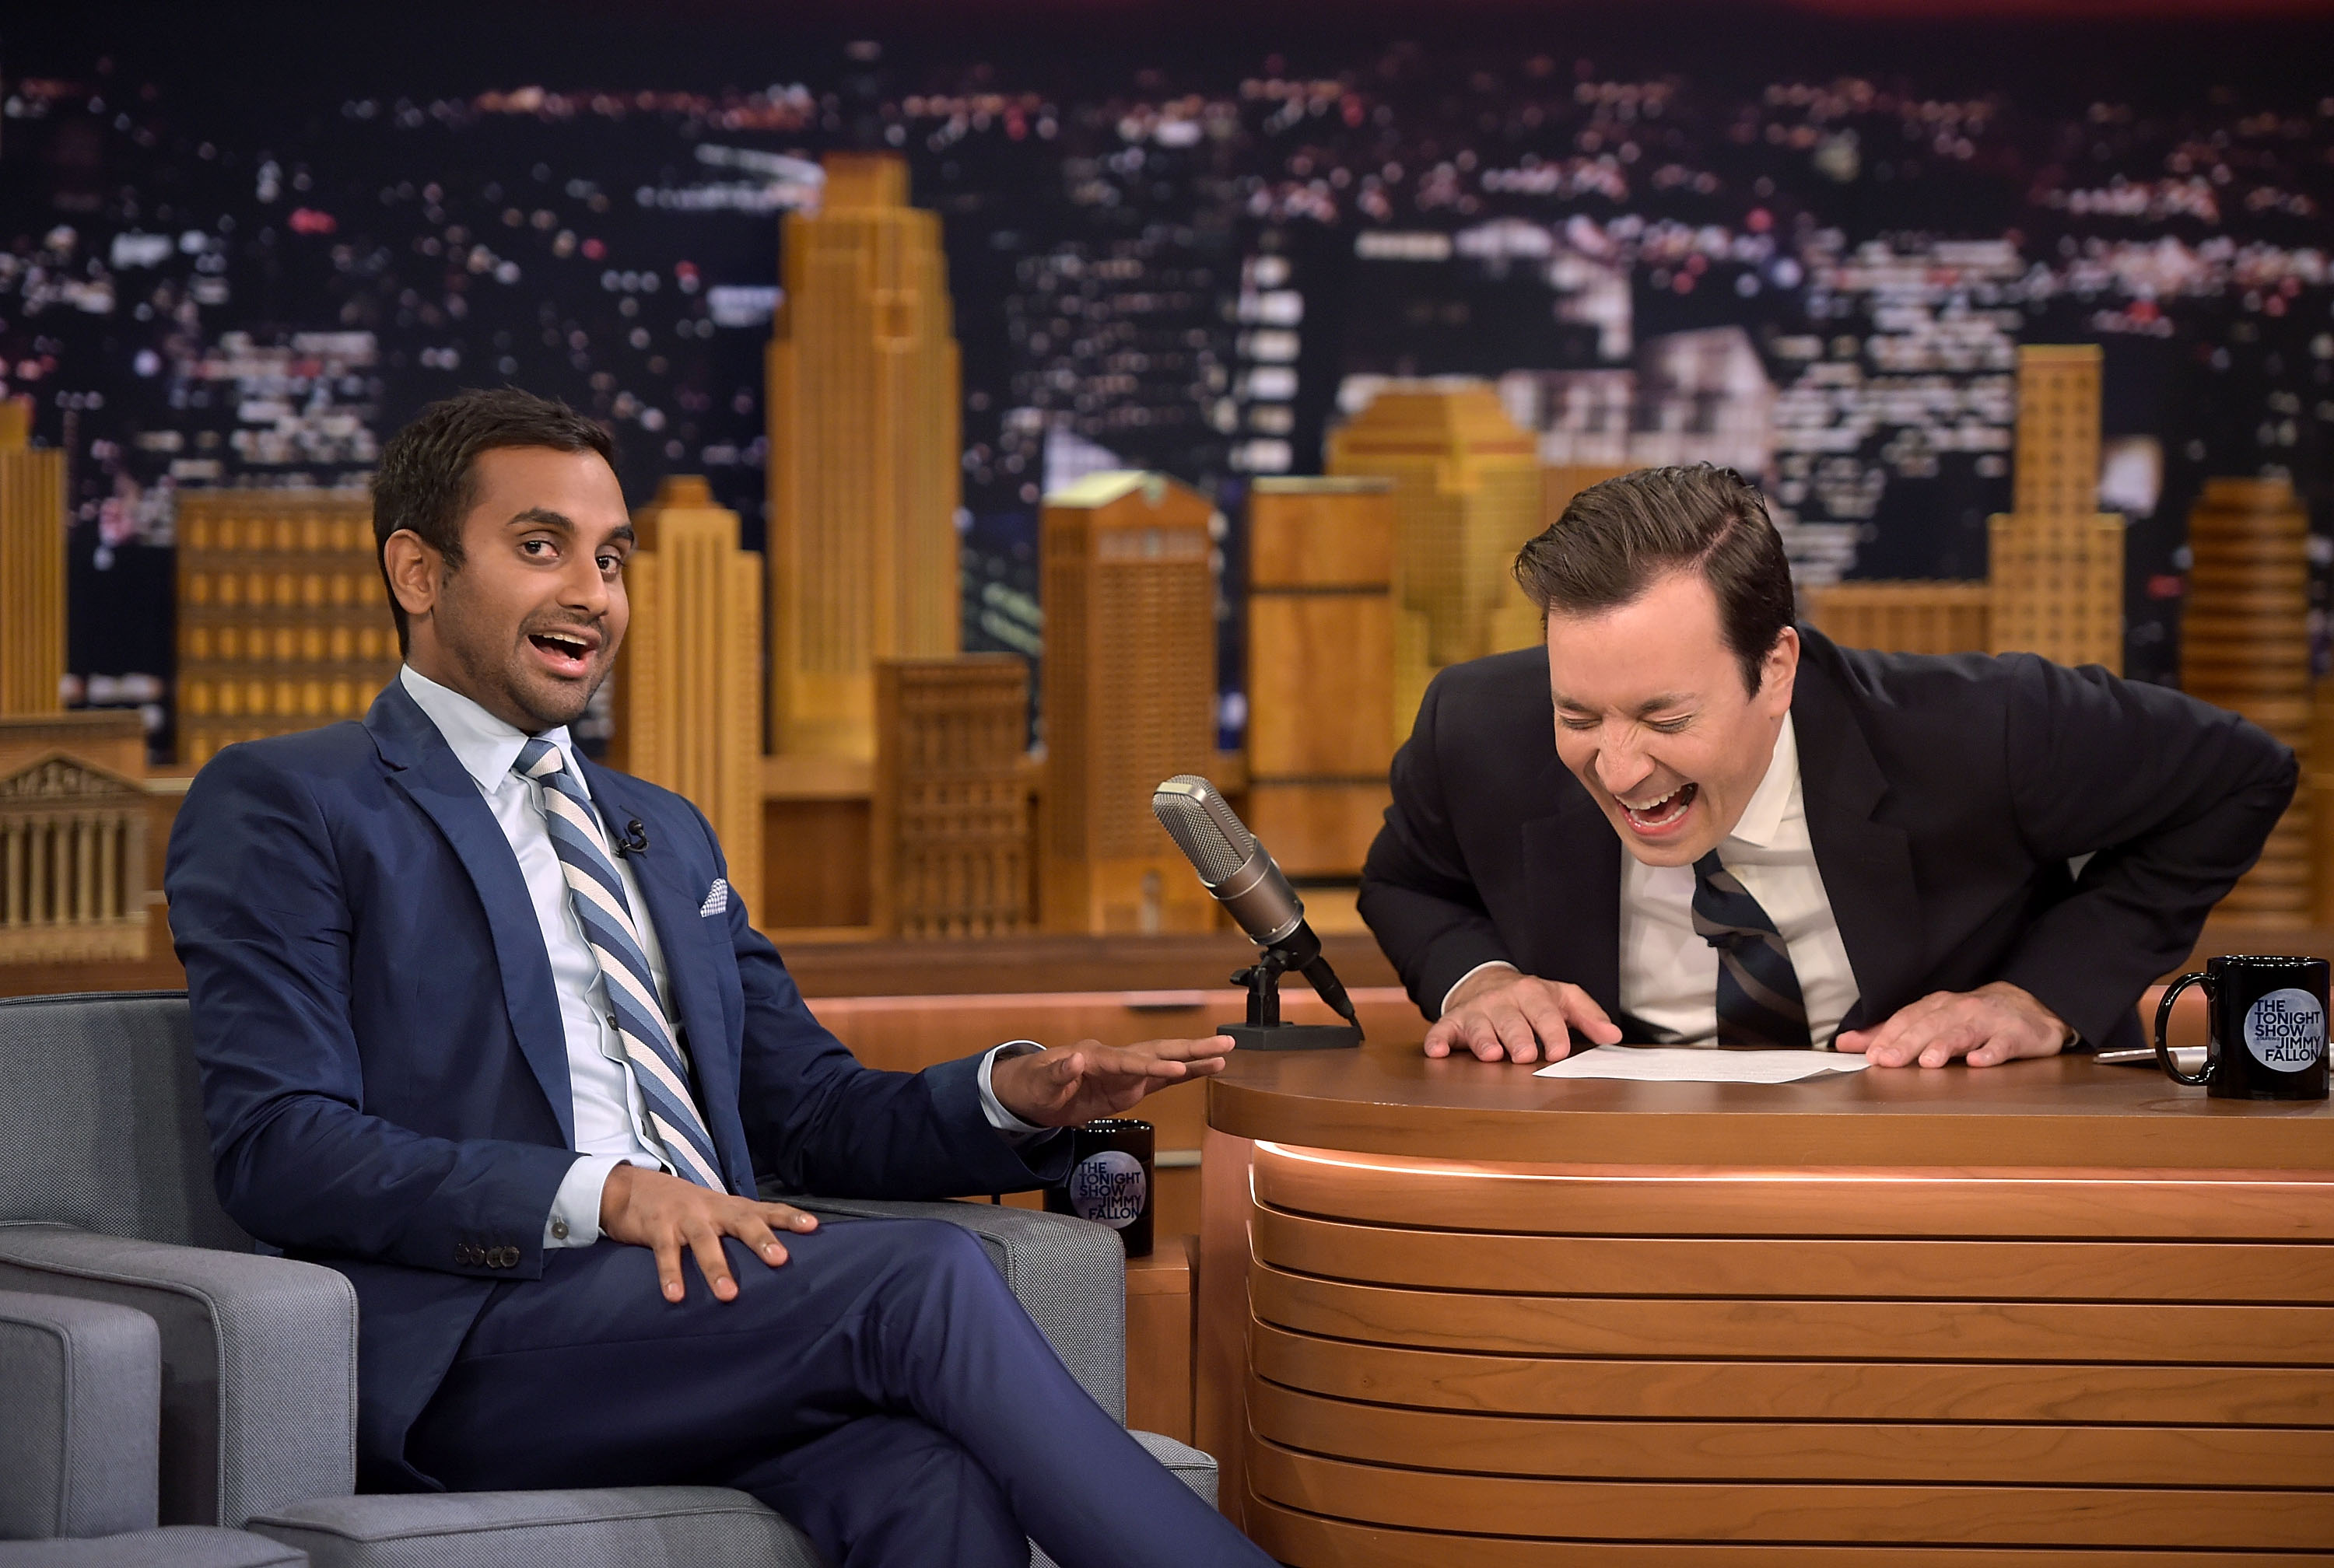 NEW YORK, NY - AUGUST 03:  Actor Aziz Ansari and host Jimmy Fallon appear on  The Tonight Show Starring Jimmy Fallon  at Rockefeller Center on August 3, 2016 in New York City.  (Photo by J. Kempin/Getty Images for NBC)